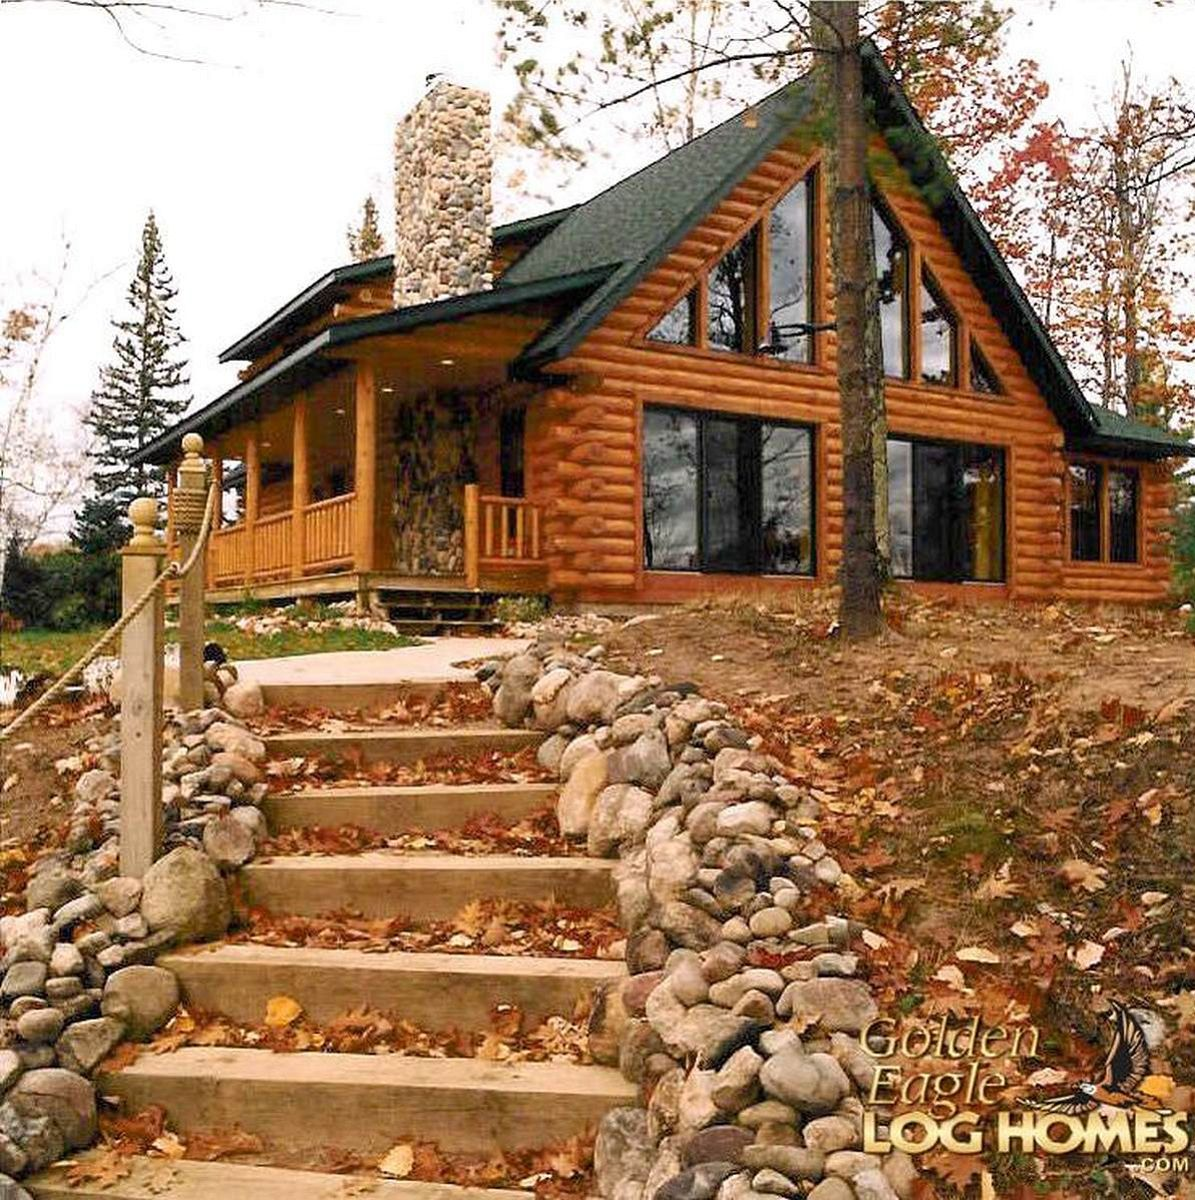 log home by golden eagle log homes golden eagle log logs cabin home homes house small log cabin kitslog - Mini Log Cabin Kits